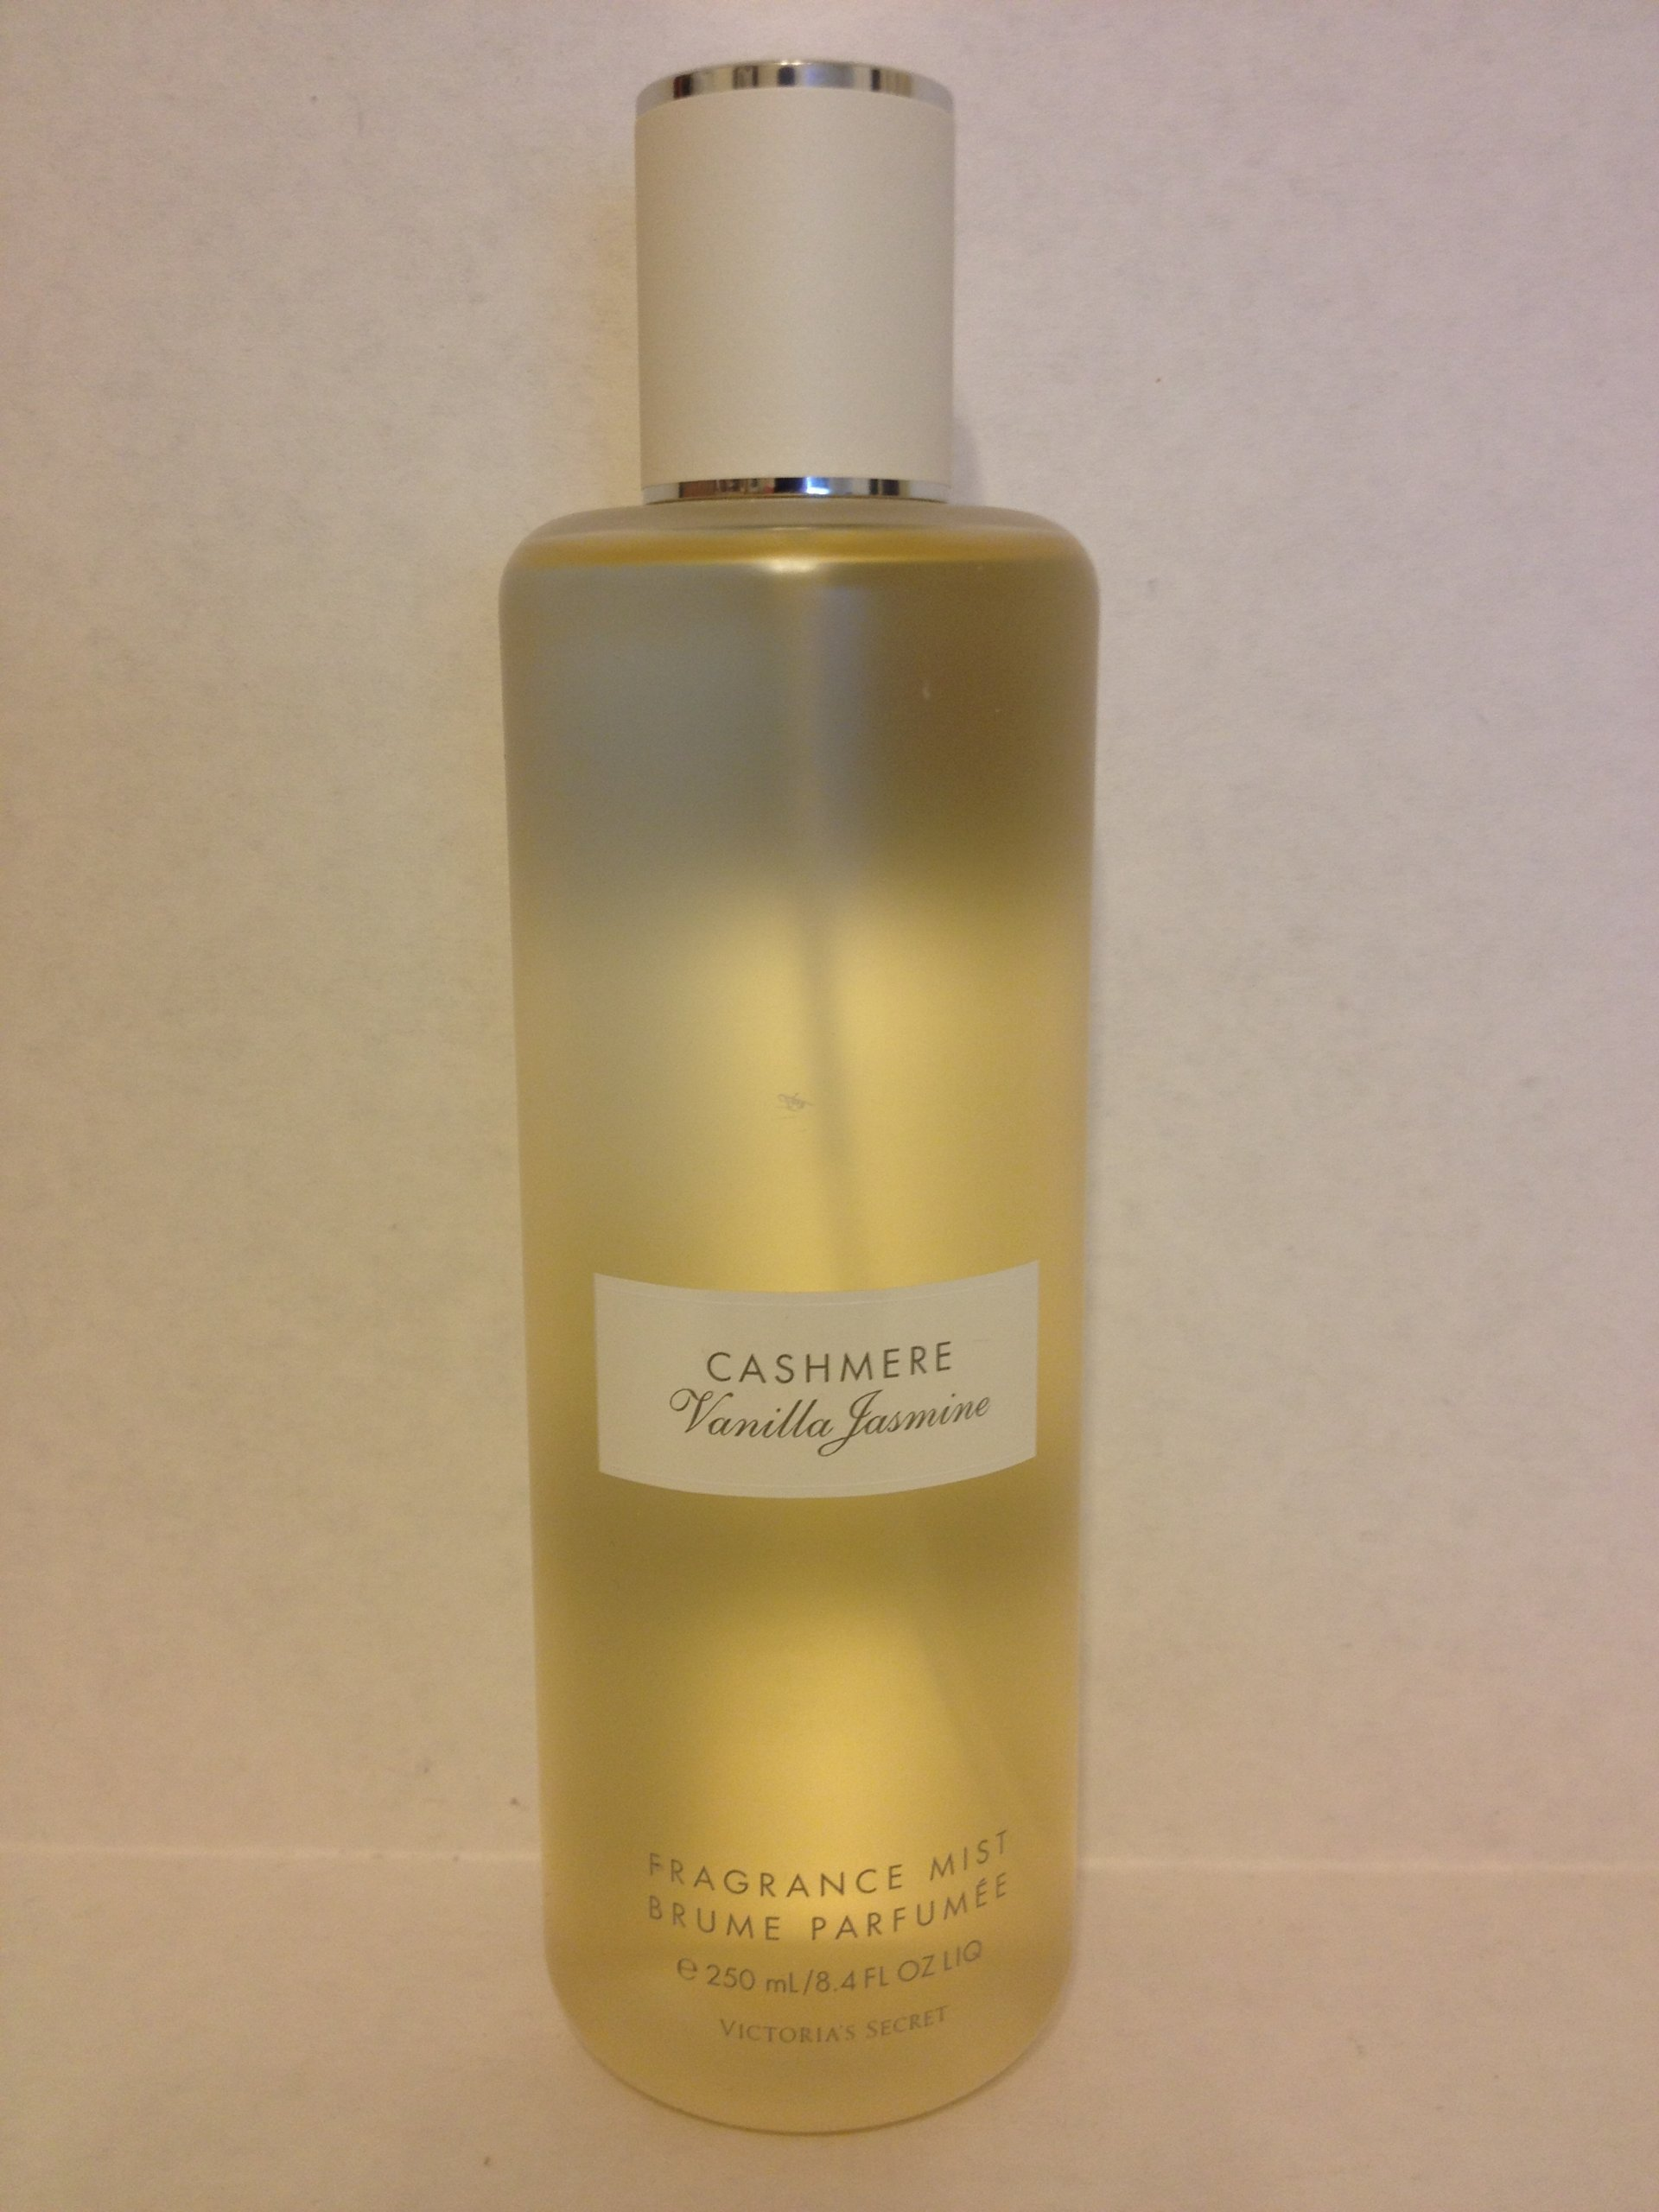 Victoria's Secret Cashmere Vanilla Jasmine Fragrance Mist 8.0 fl. oz. (250 mL)